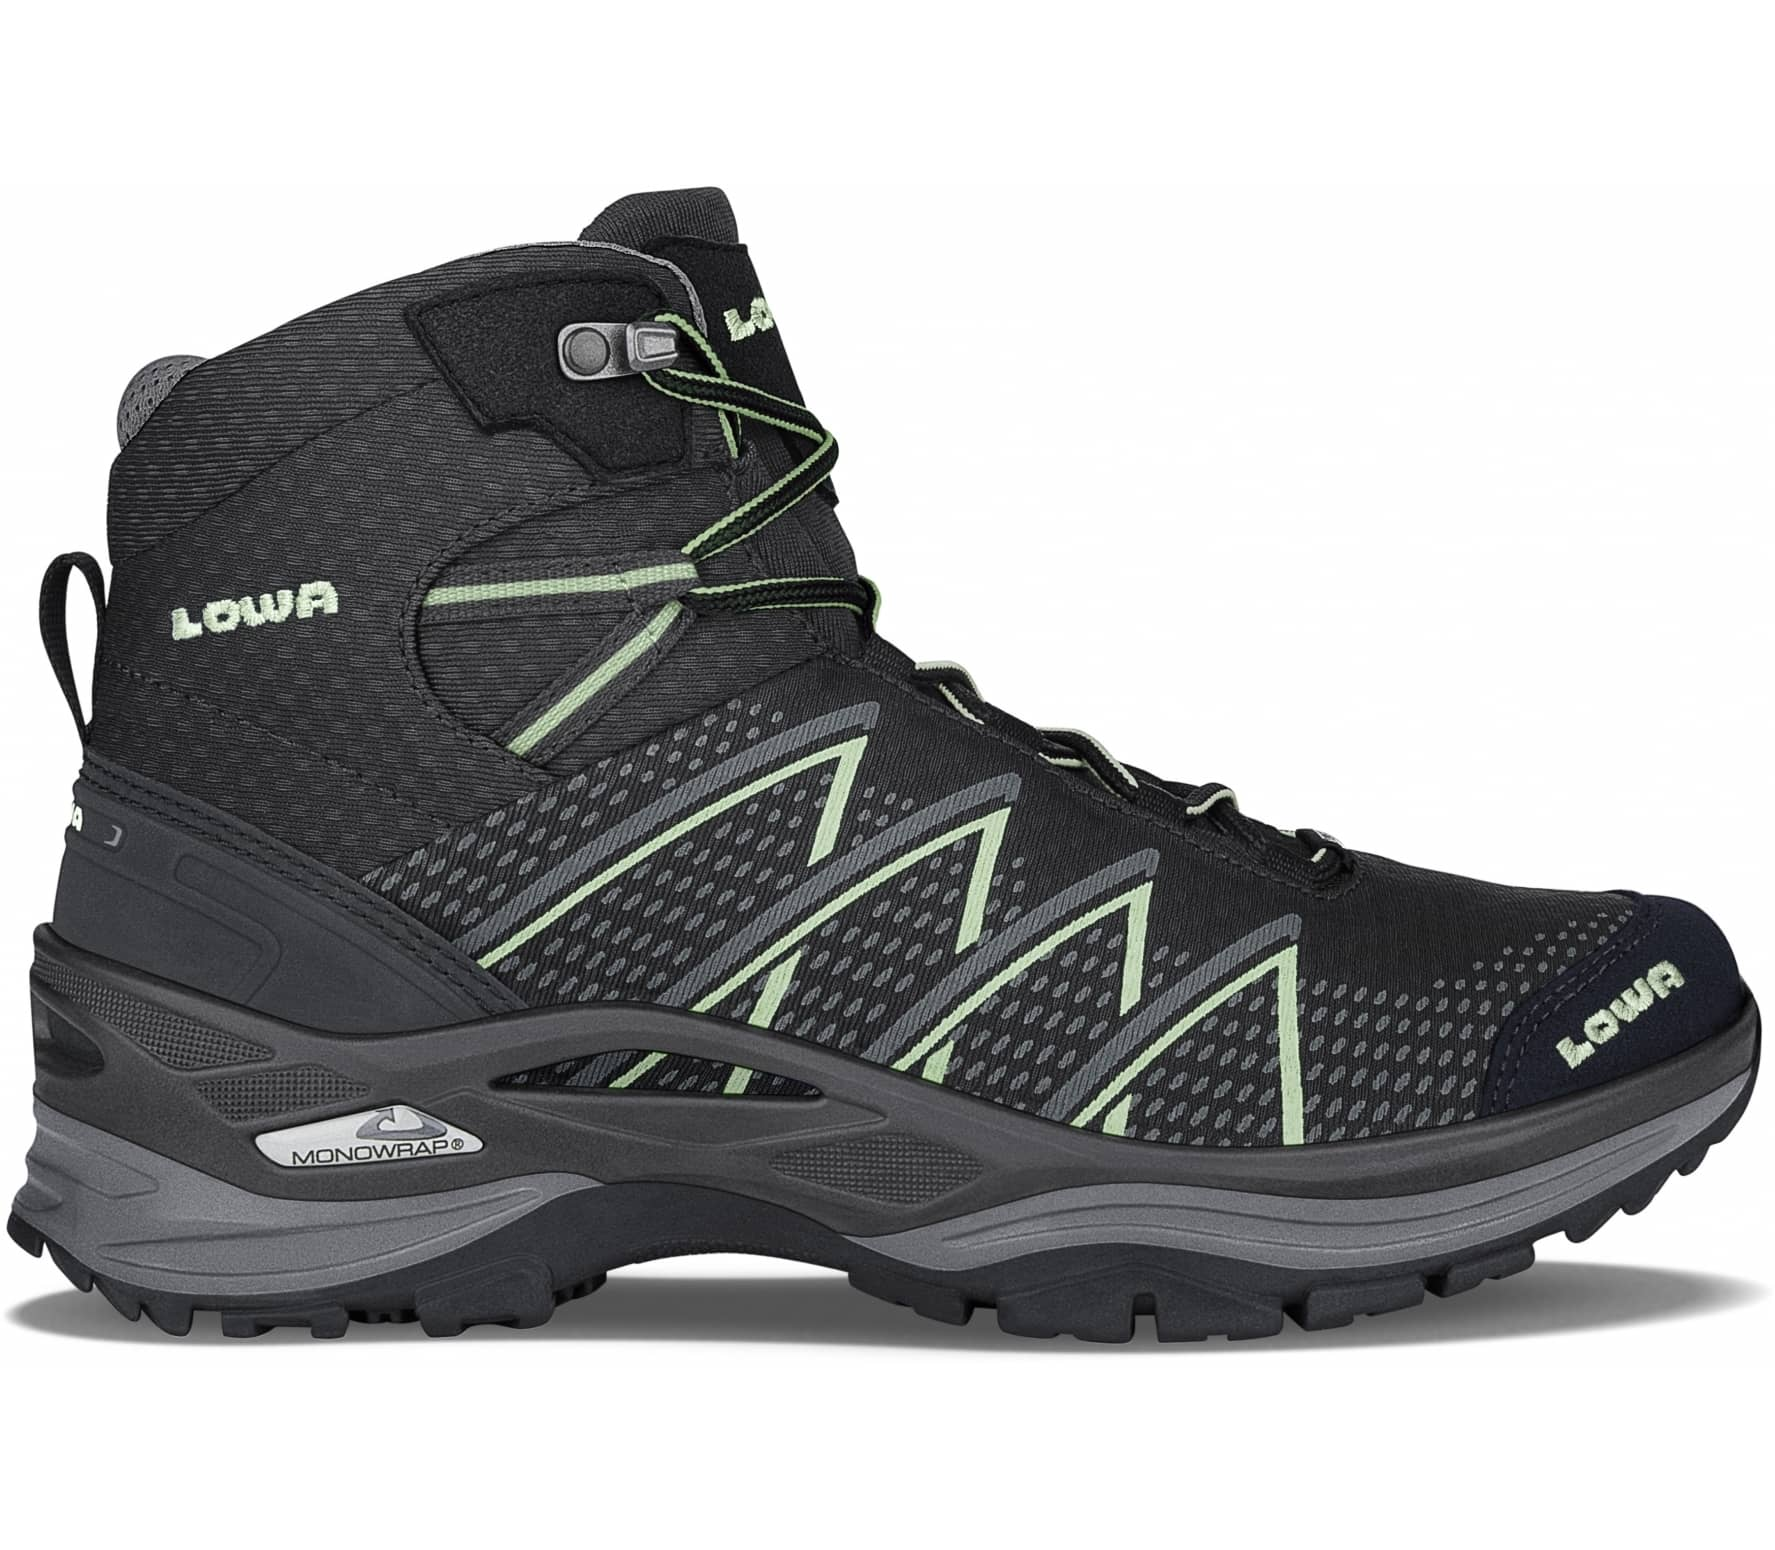 brand new a7fe2 0f982 Lowa - Ferrox Evo GTX® Mid women s hiking shoes (black)